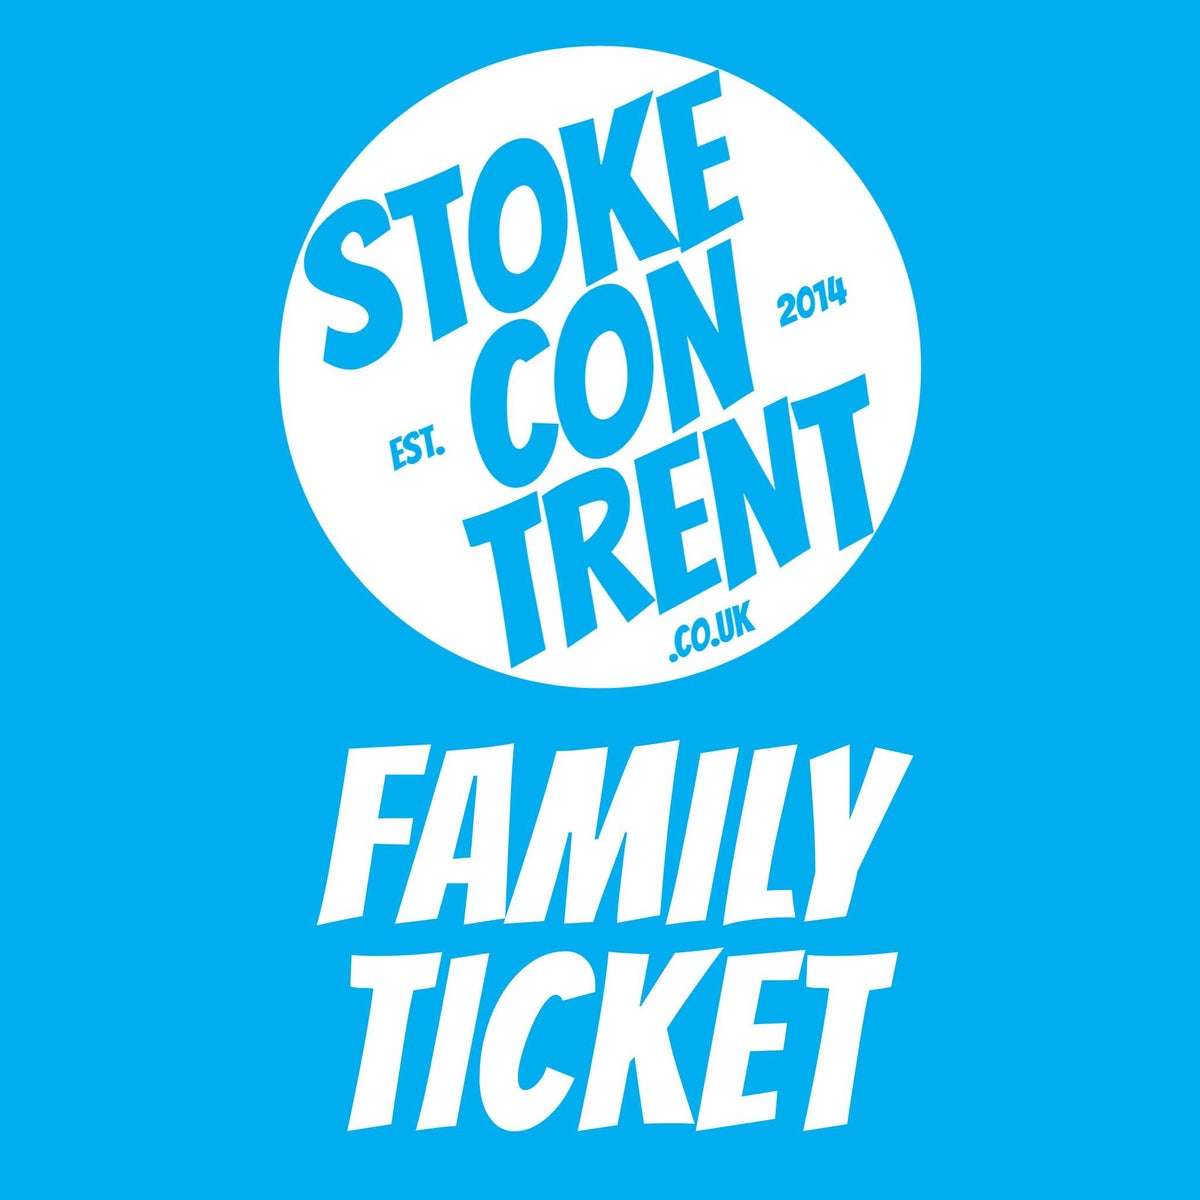 Image of Family Ticket for Stoke CON Trent 11